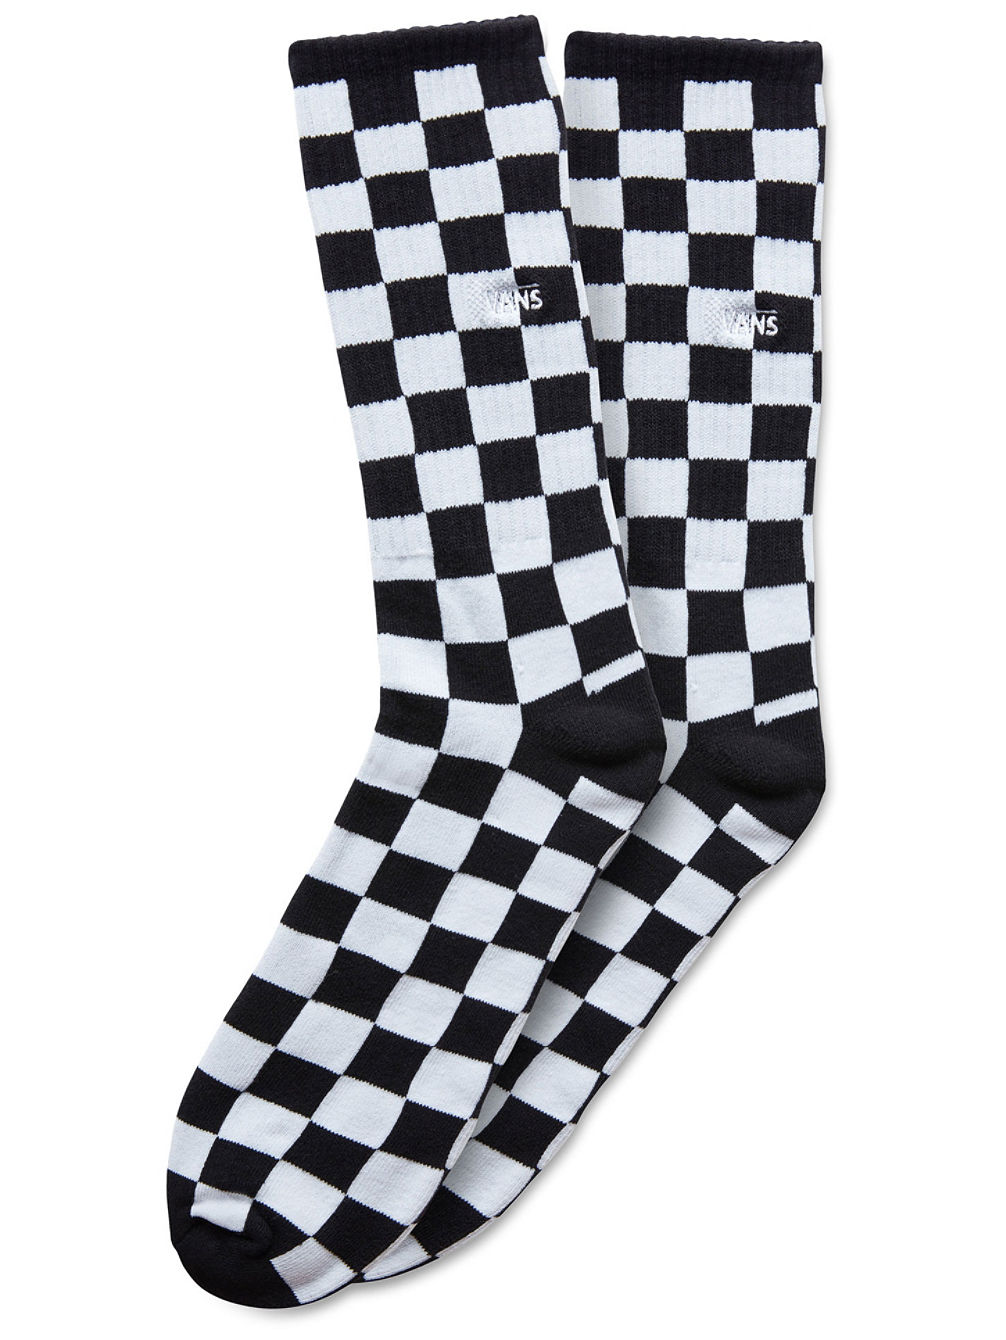 b17ae87857d364 Buy Vans Checkerboard II Crew (9.5-13) Socks online at Blue Tomato